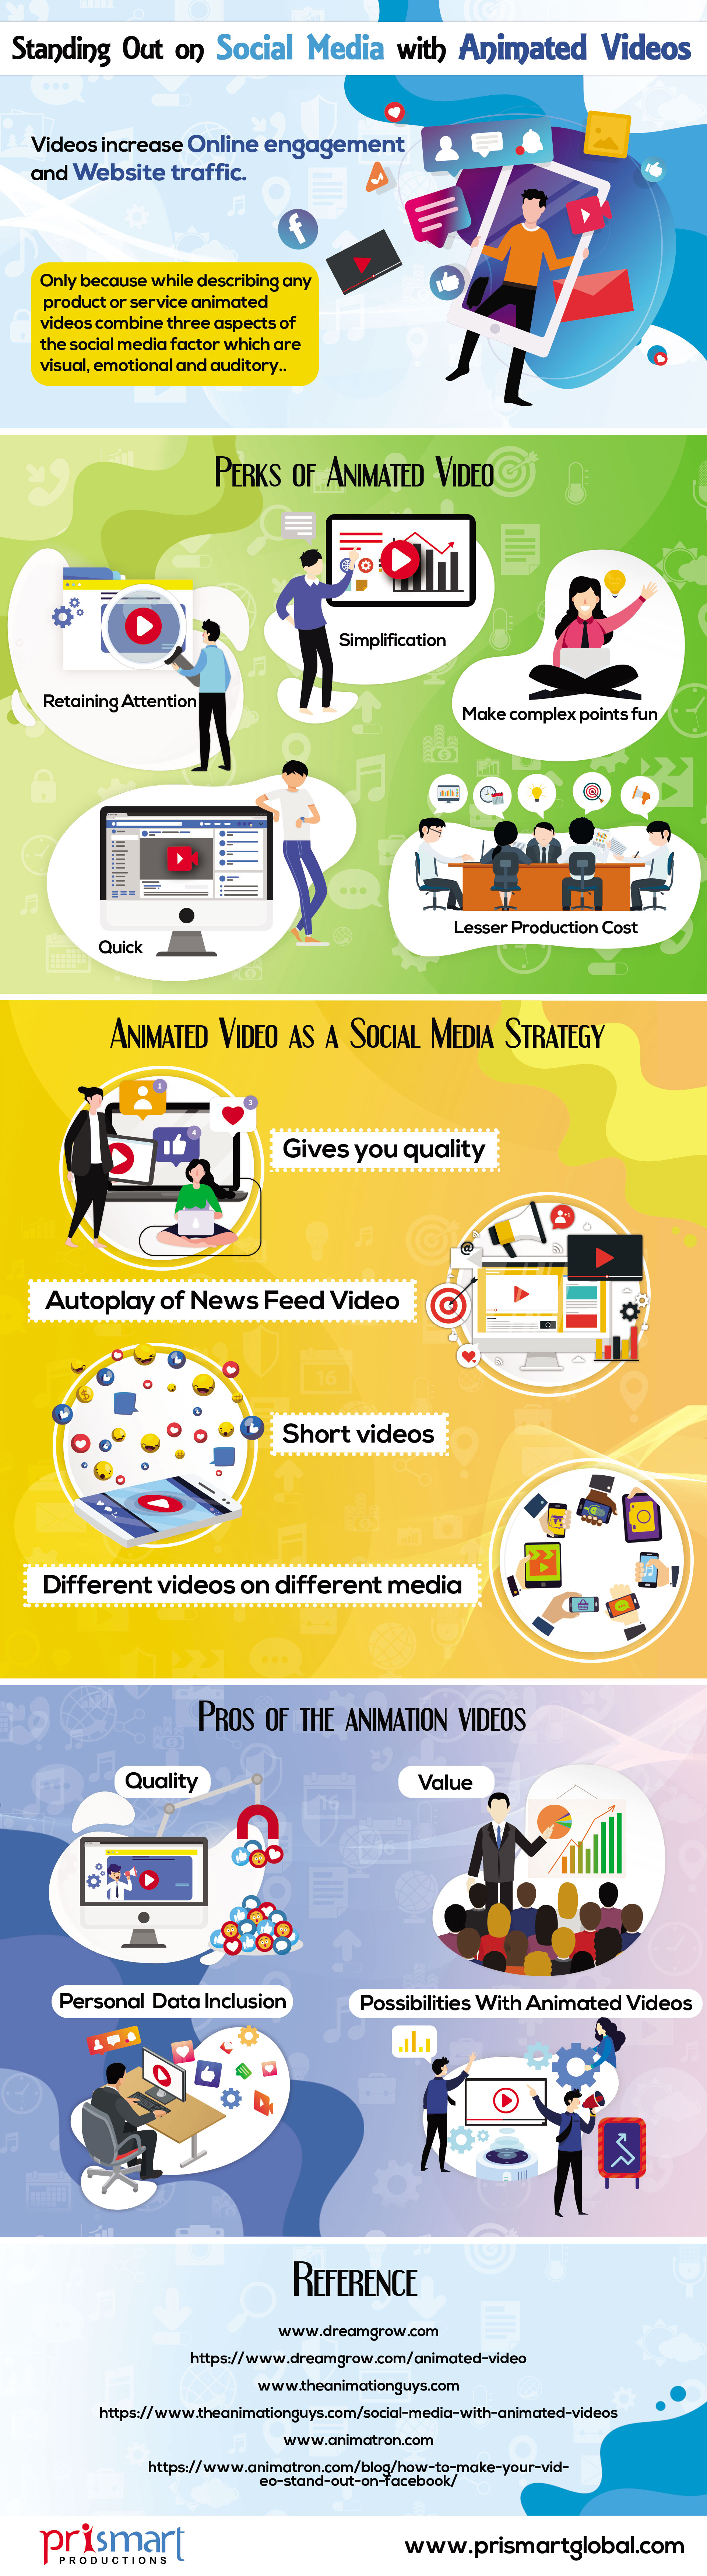 Standing Out on Social Media with Animated Videos - Top IT World